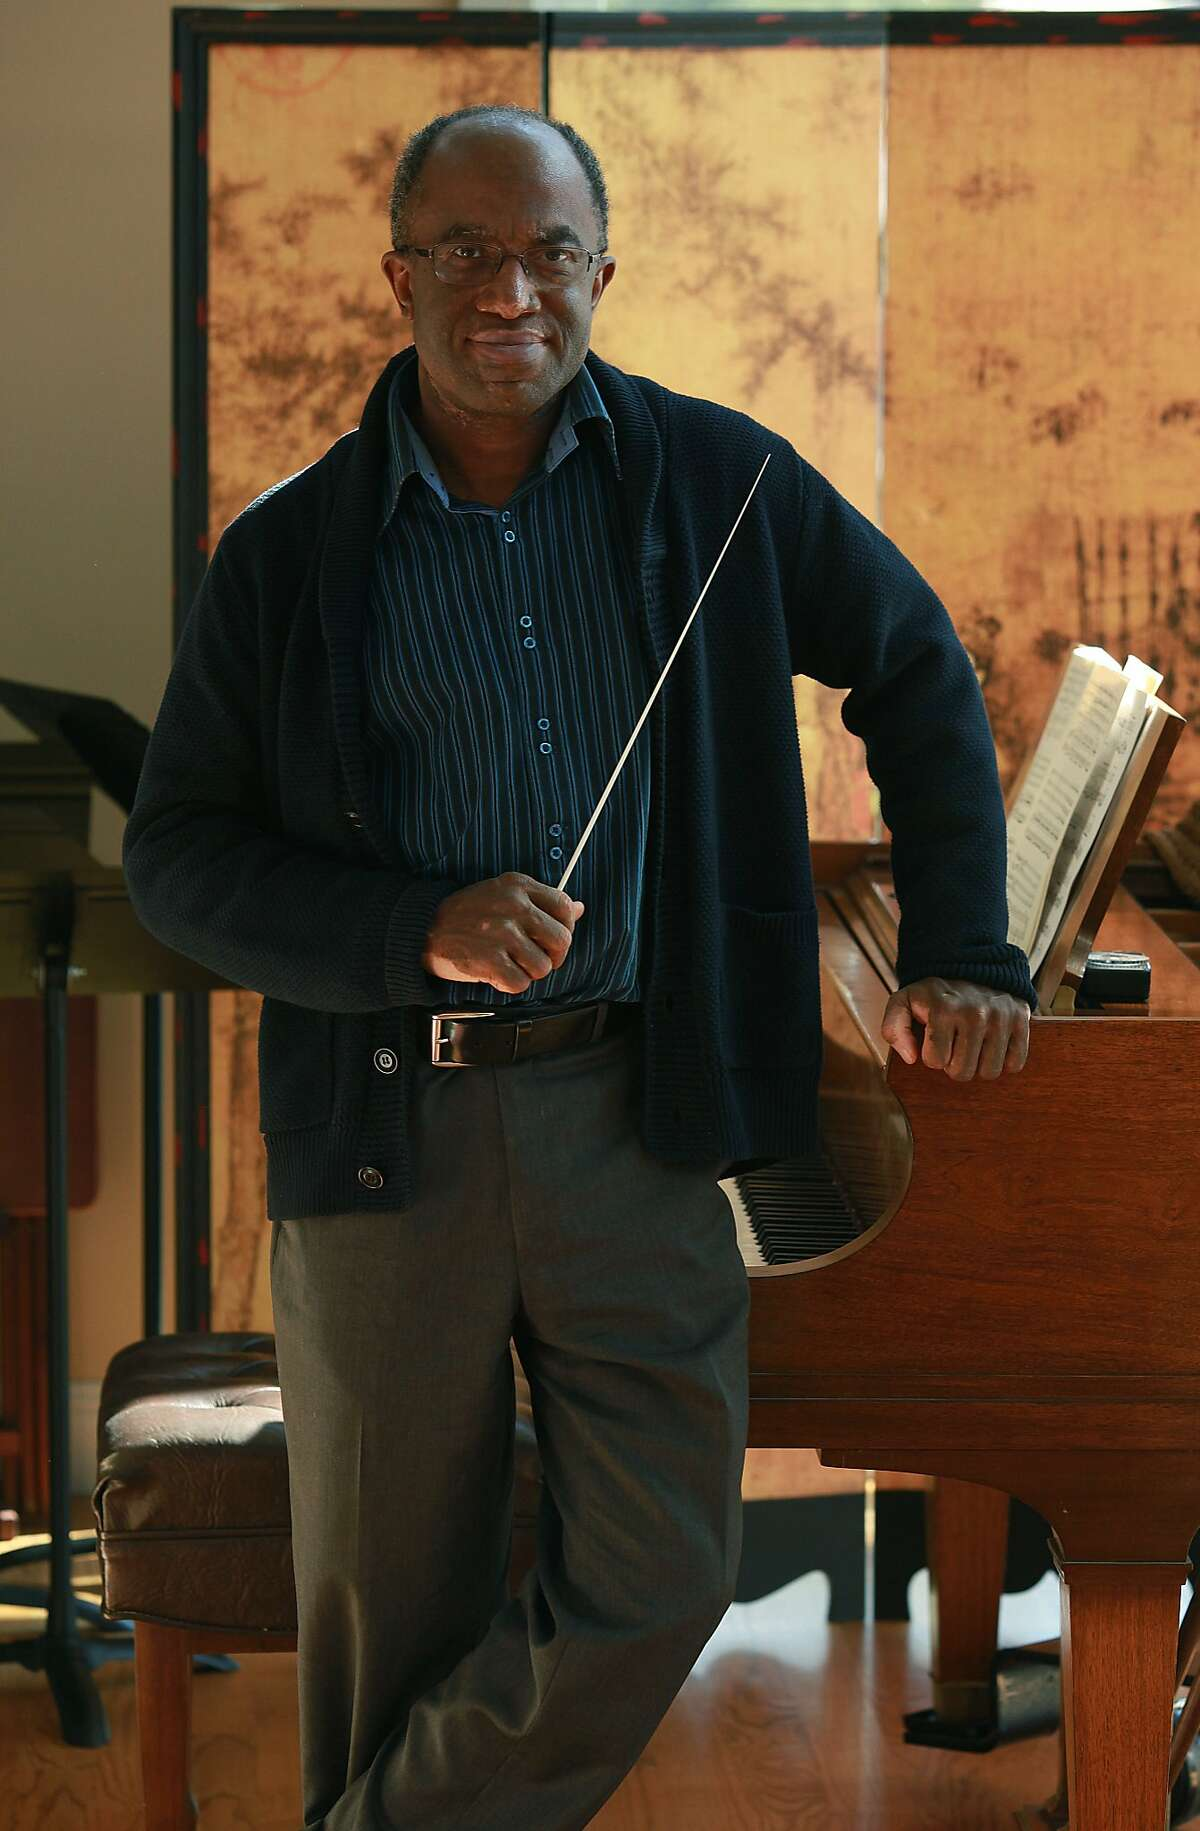 Music director of Oakland East Bay Symphony Michael Morgan at home in Oakland.